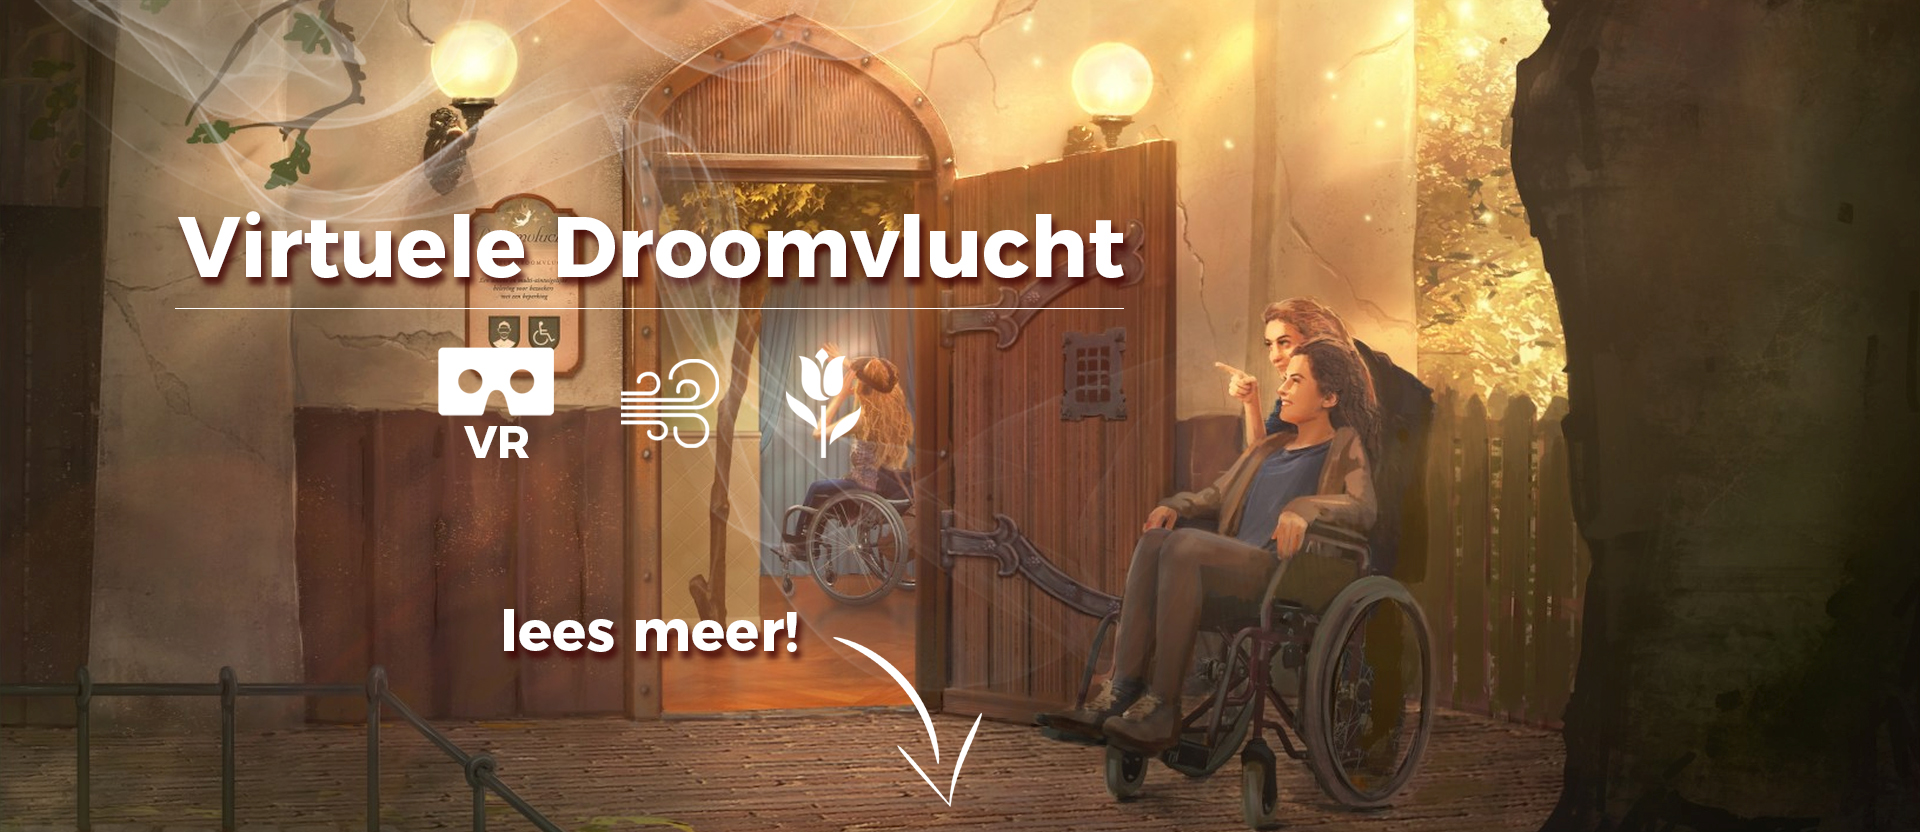 Retroscent Virtuele Droomvlucht